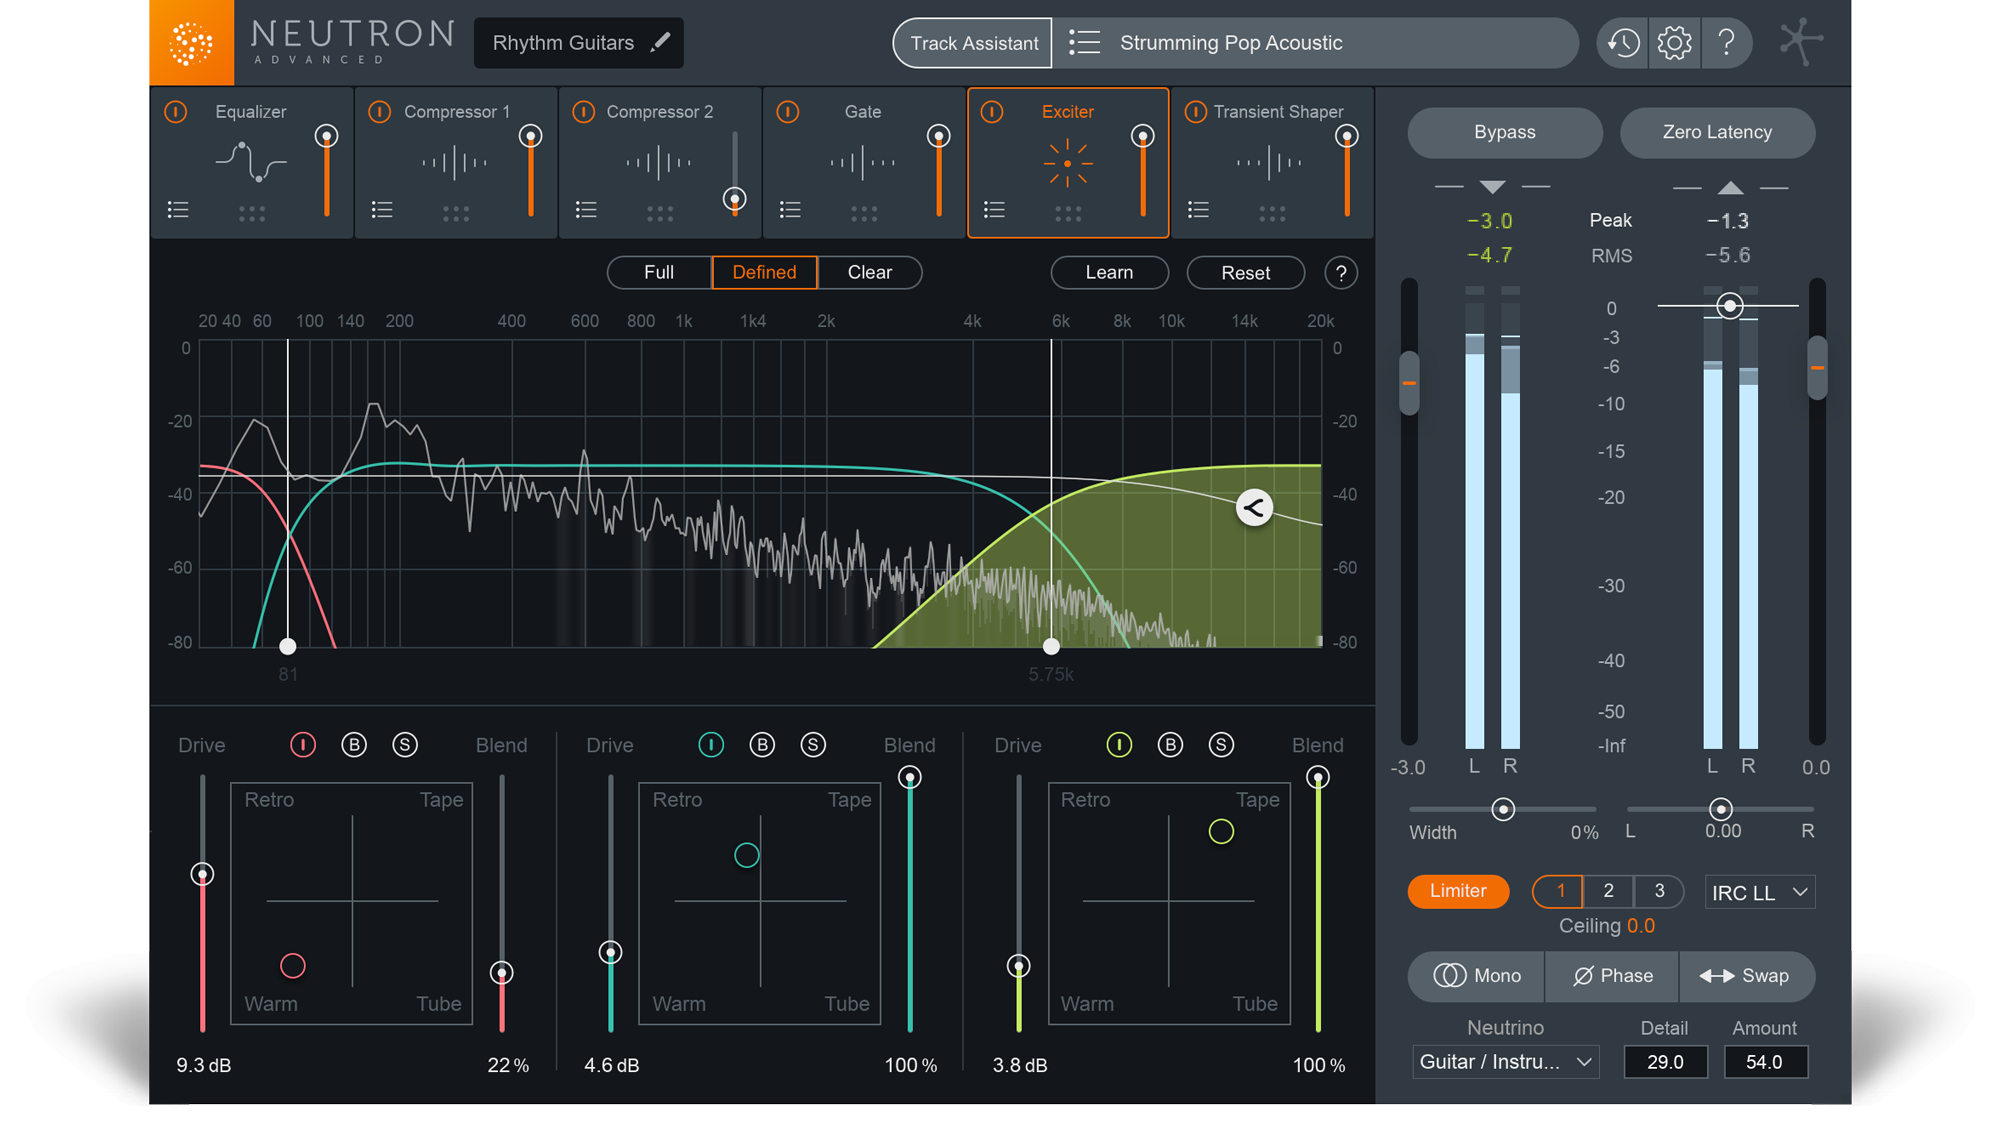 Neutron 2 A Smarter Way To Mix Izotope Audio Mixing Tools Attempting Add Three Switch Electrical Diy Chatroom Home